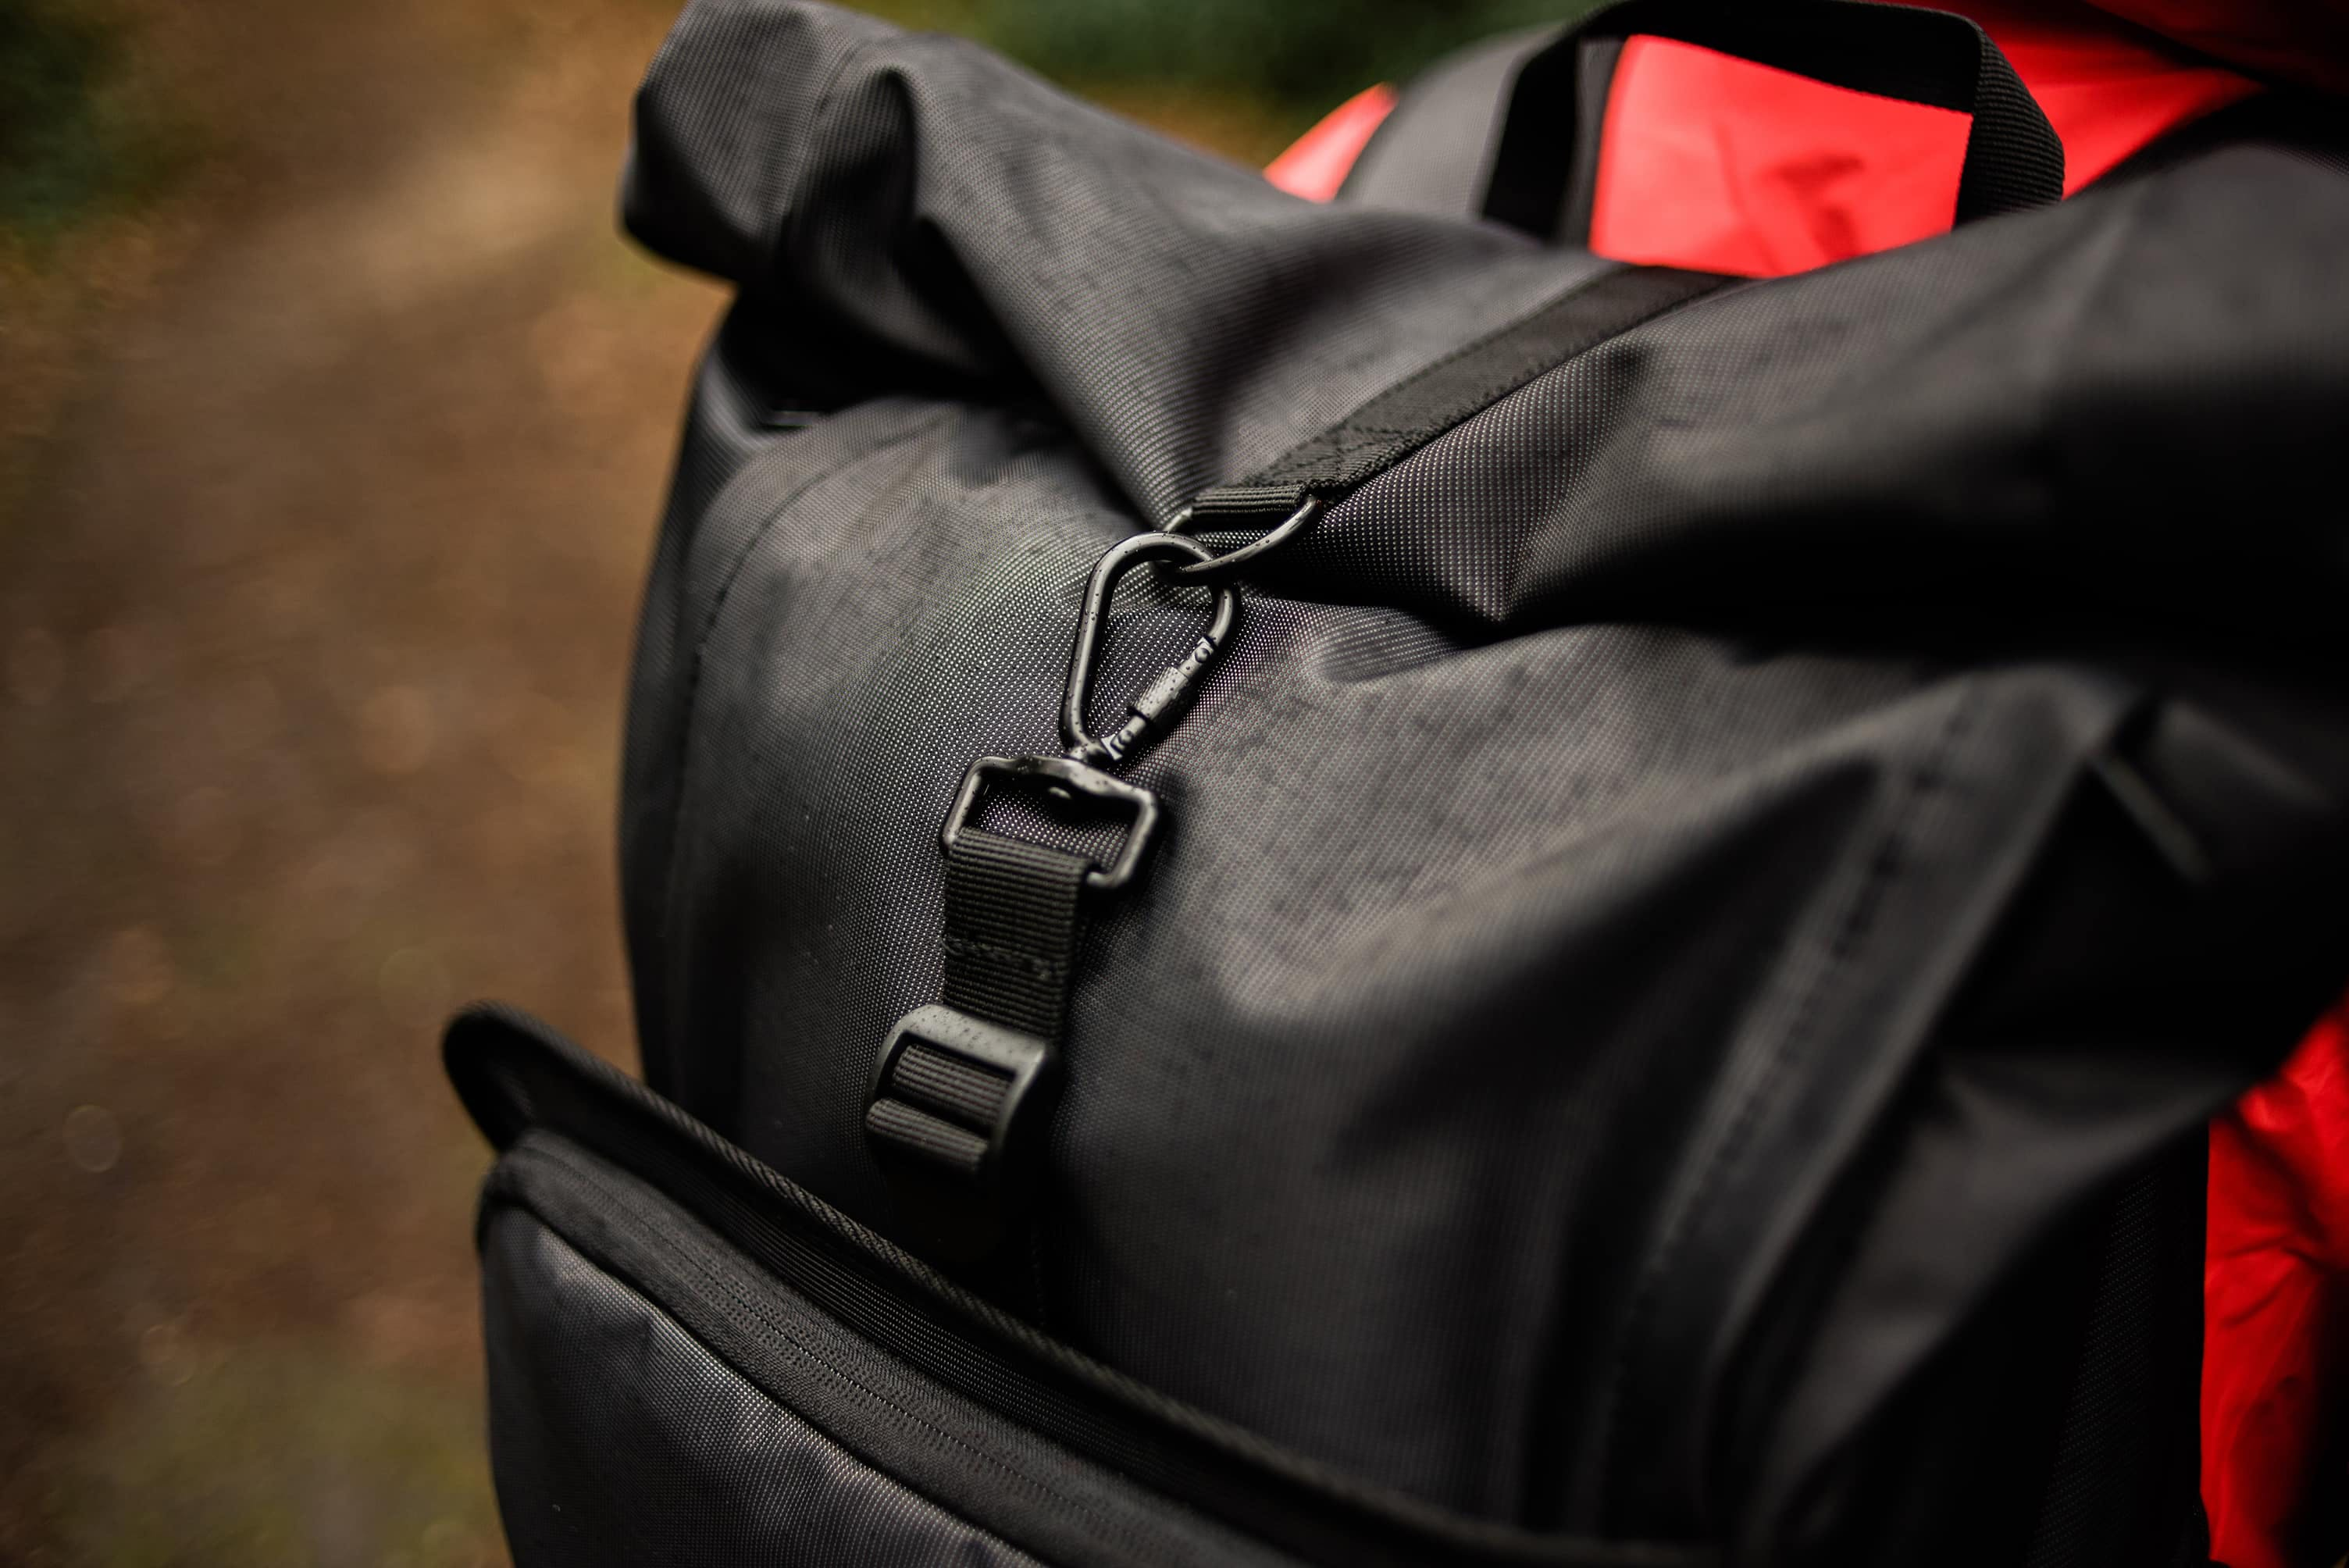 Carabiner on the Brevite roll-top